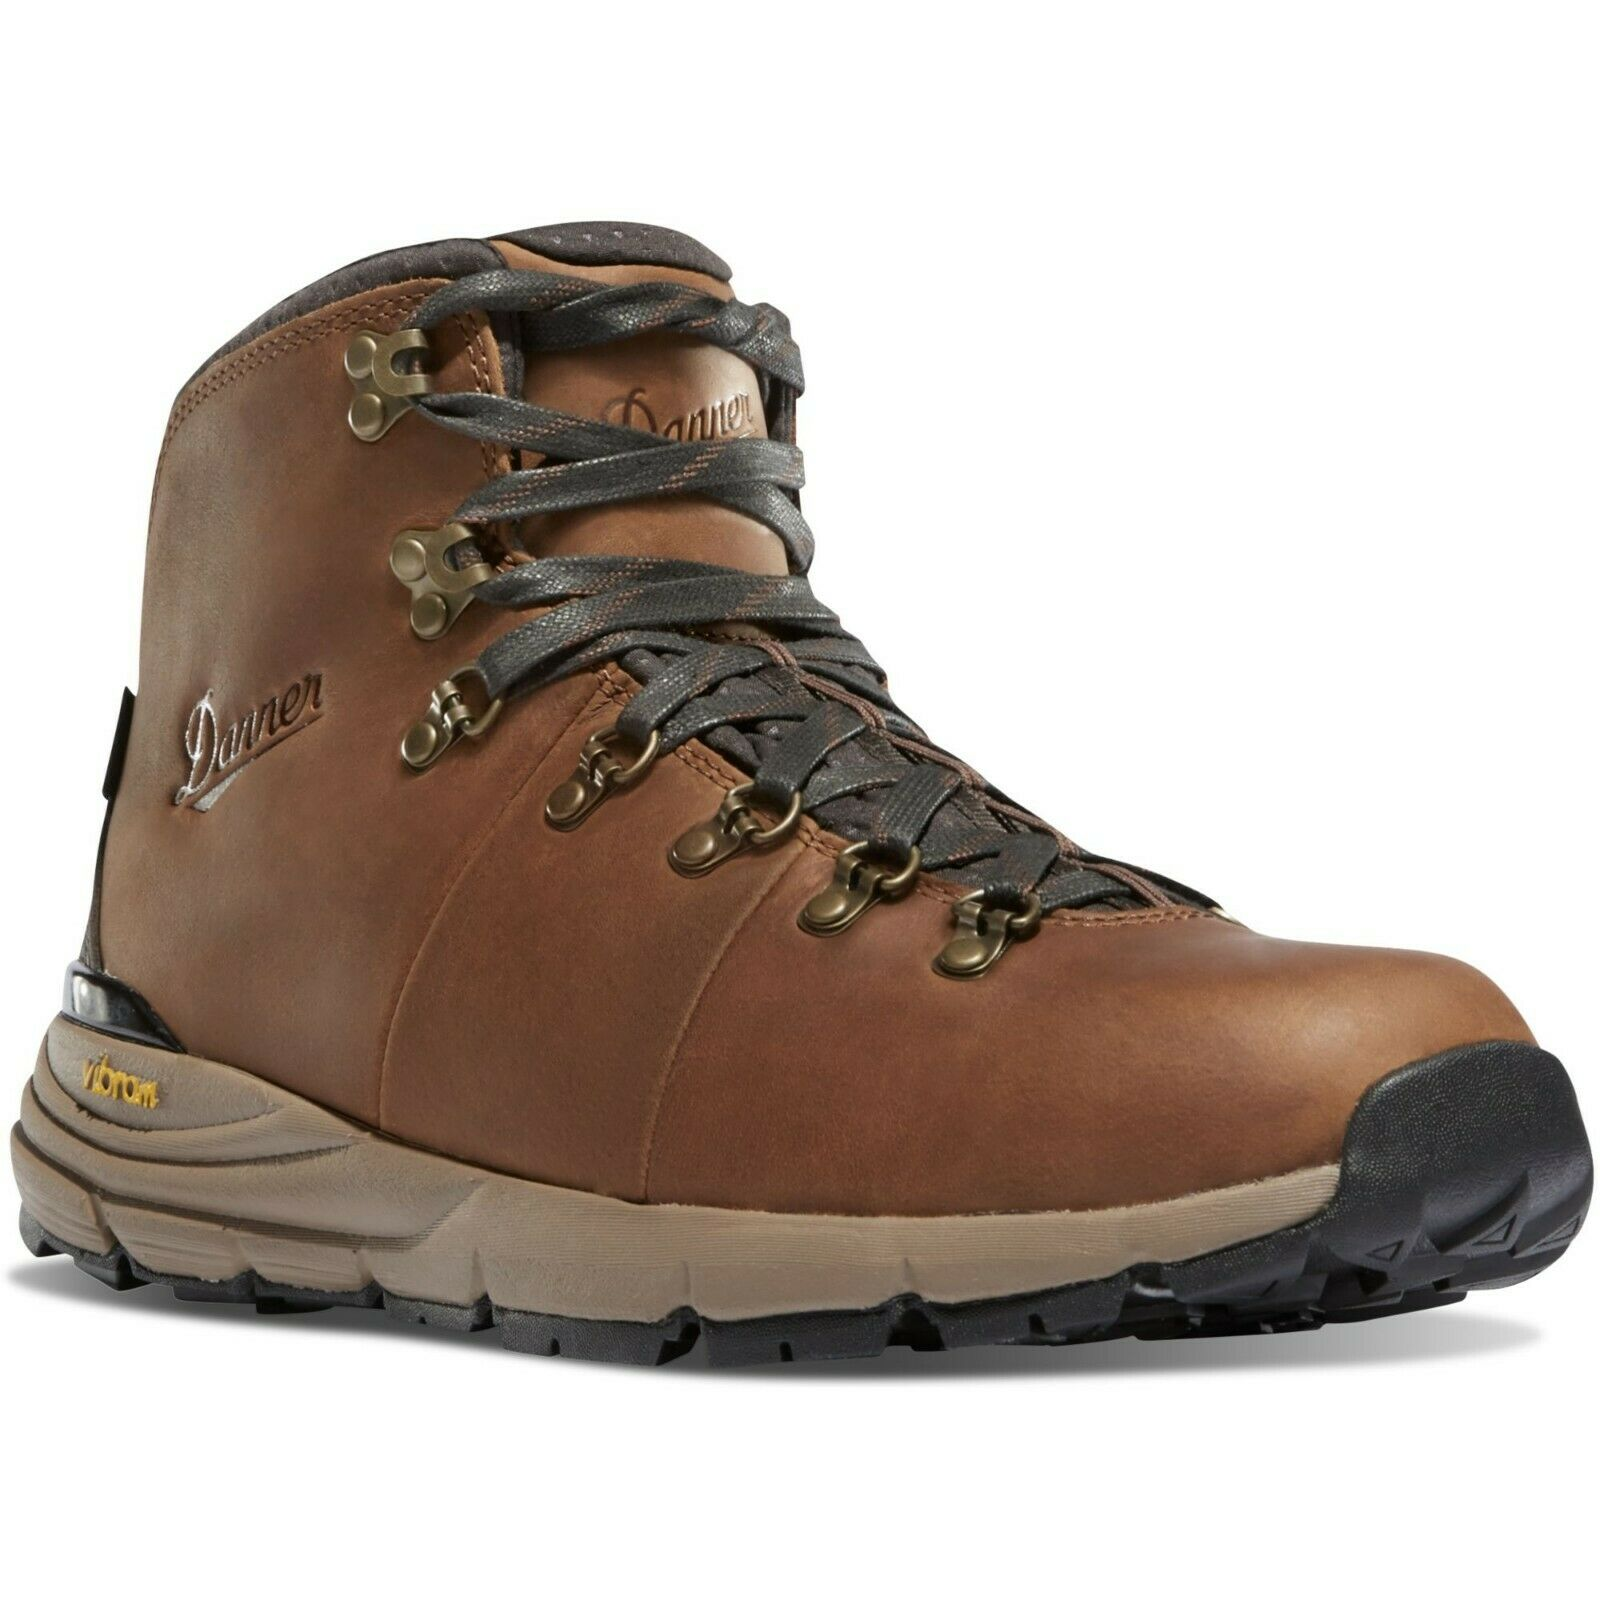 Danner Men's Mountain 600 62250 Dry Hiking Boot Out Vibram Rich Brown 4.5